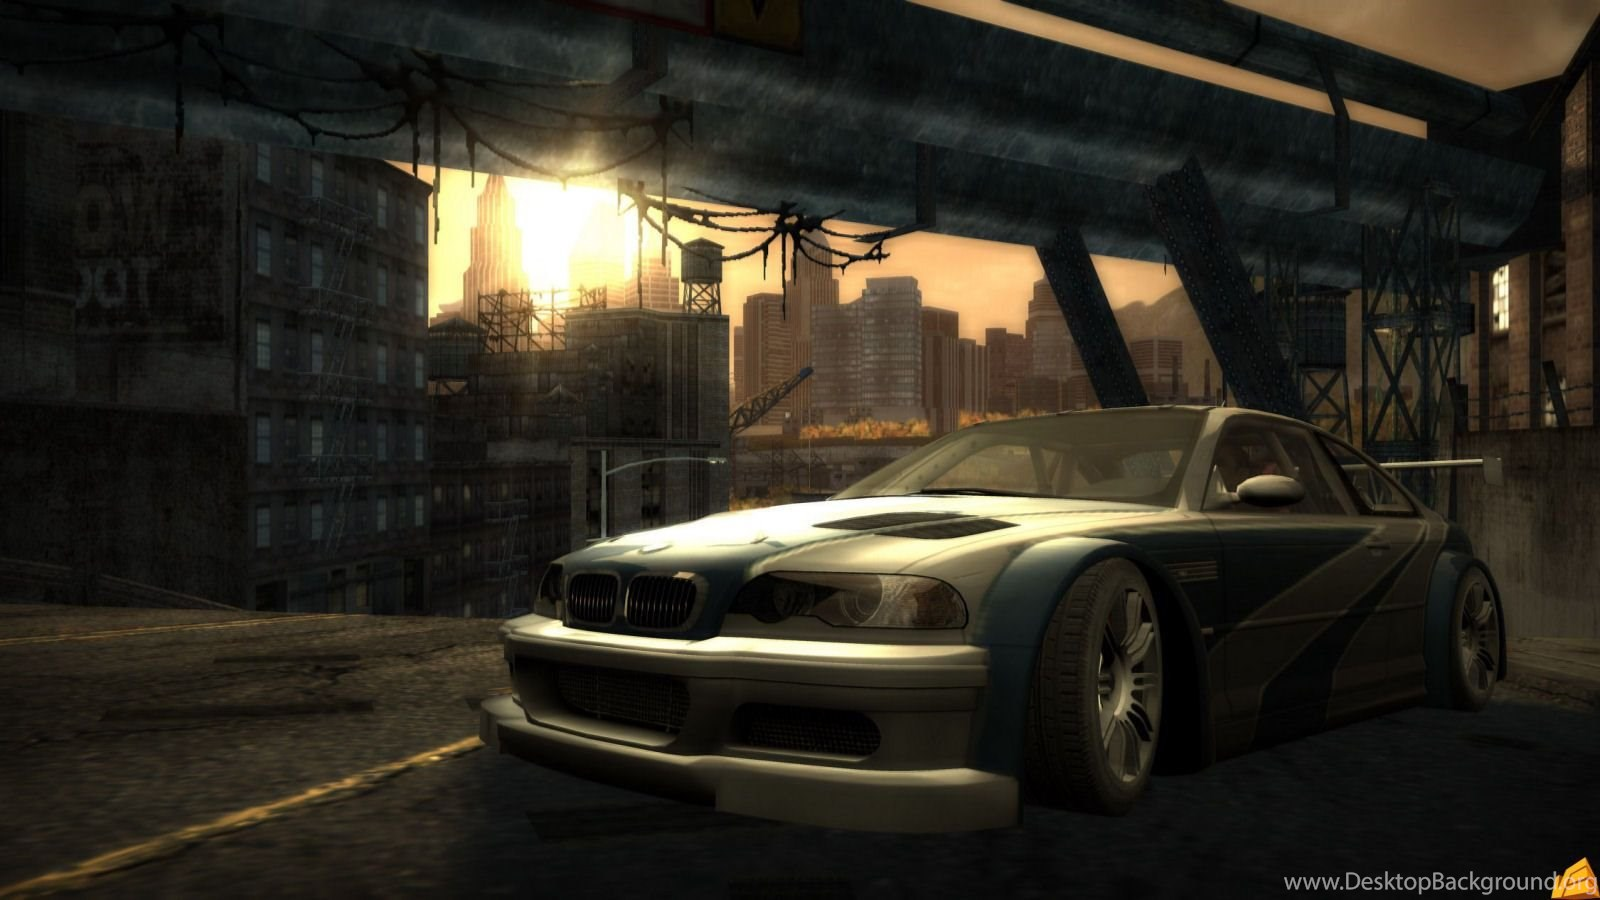 Bmw M3 Gtr Most Wanted Wallpapers Image Desktop Background